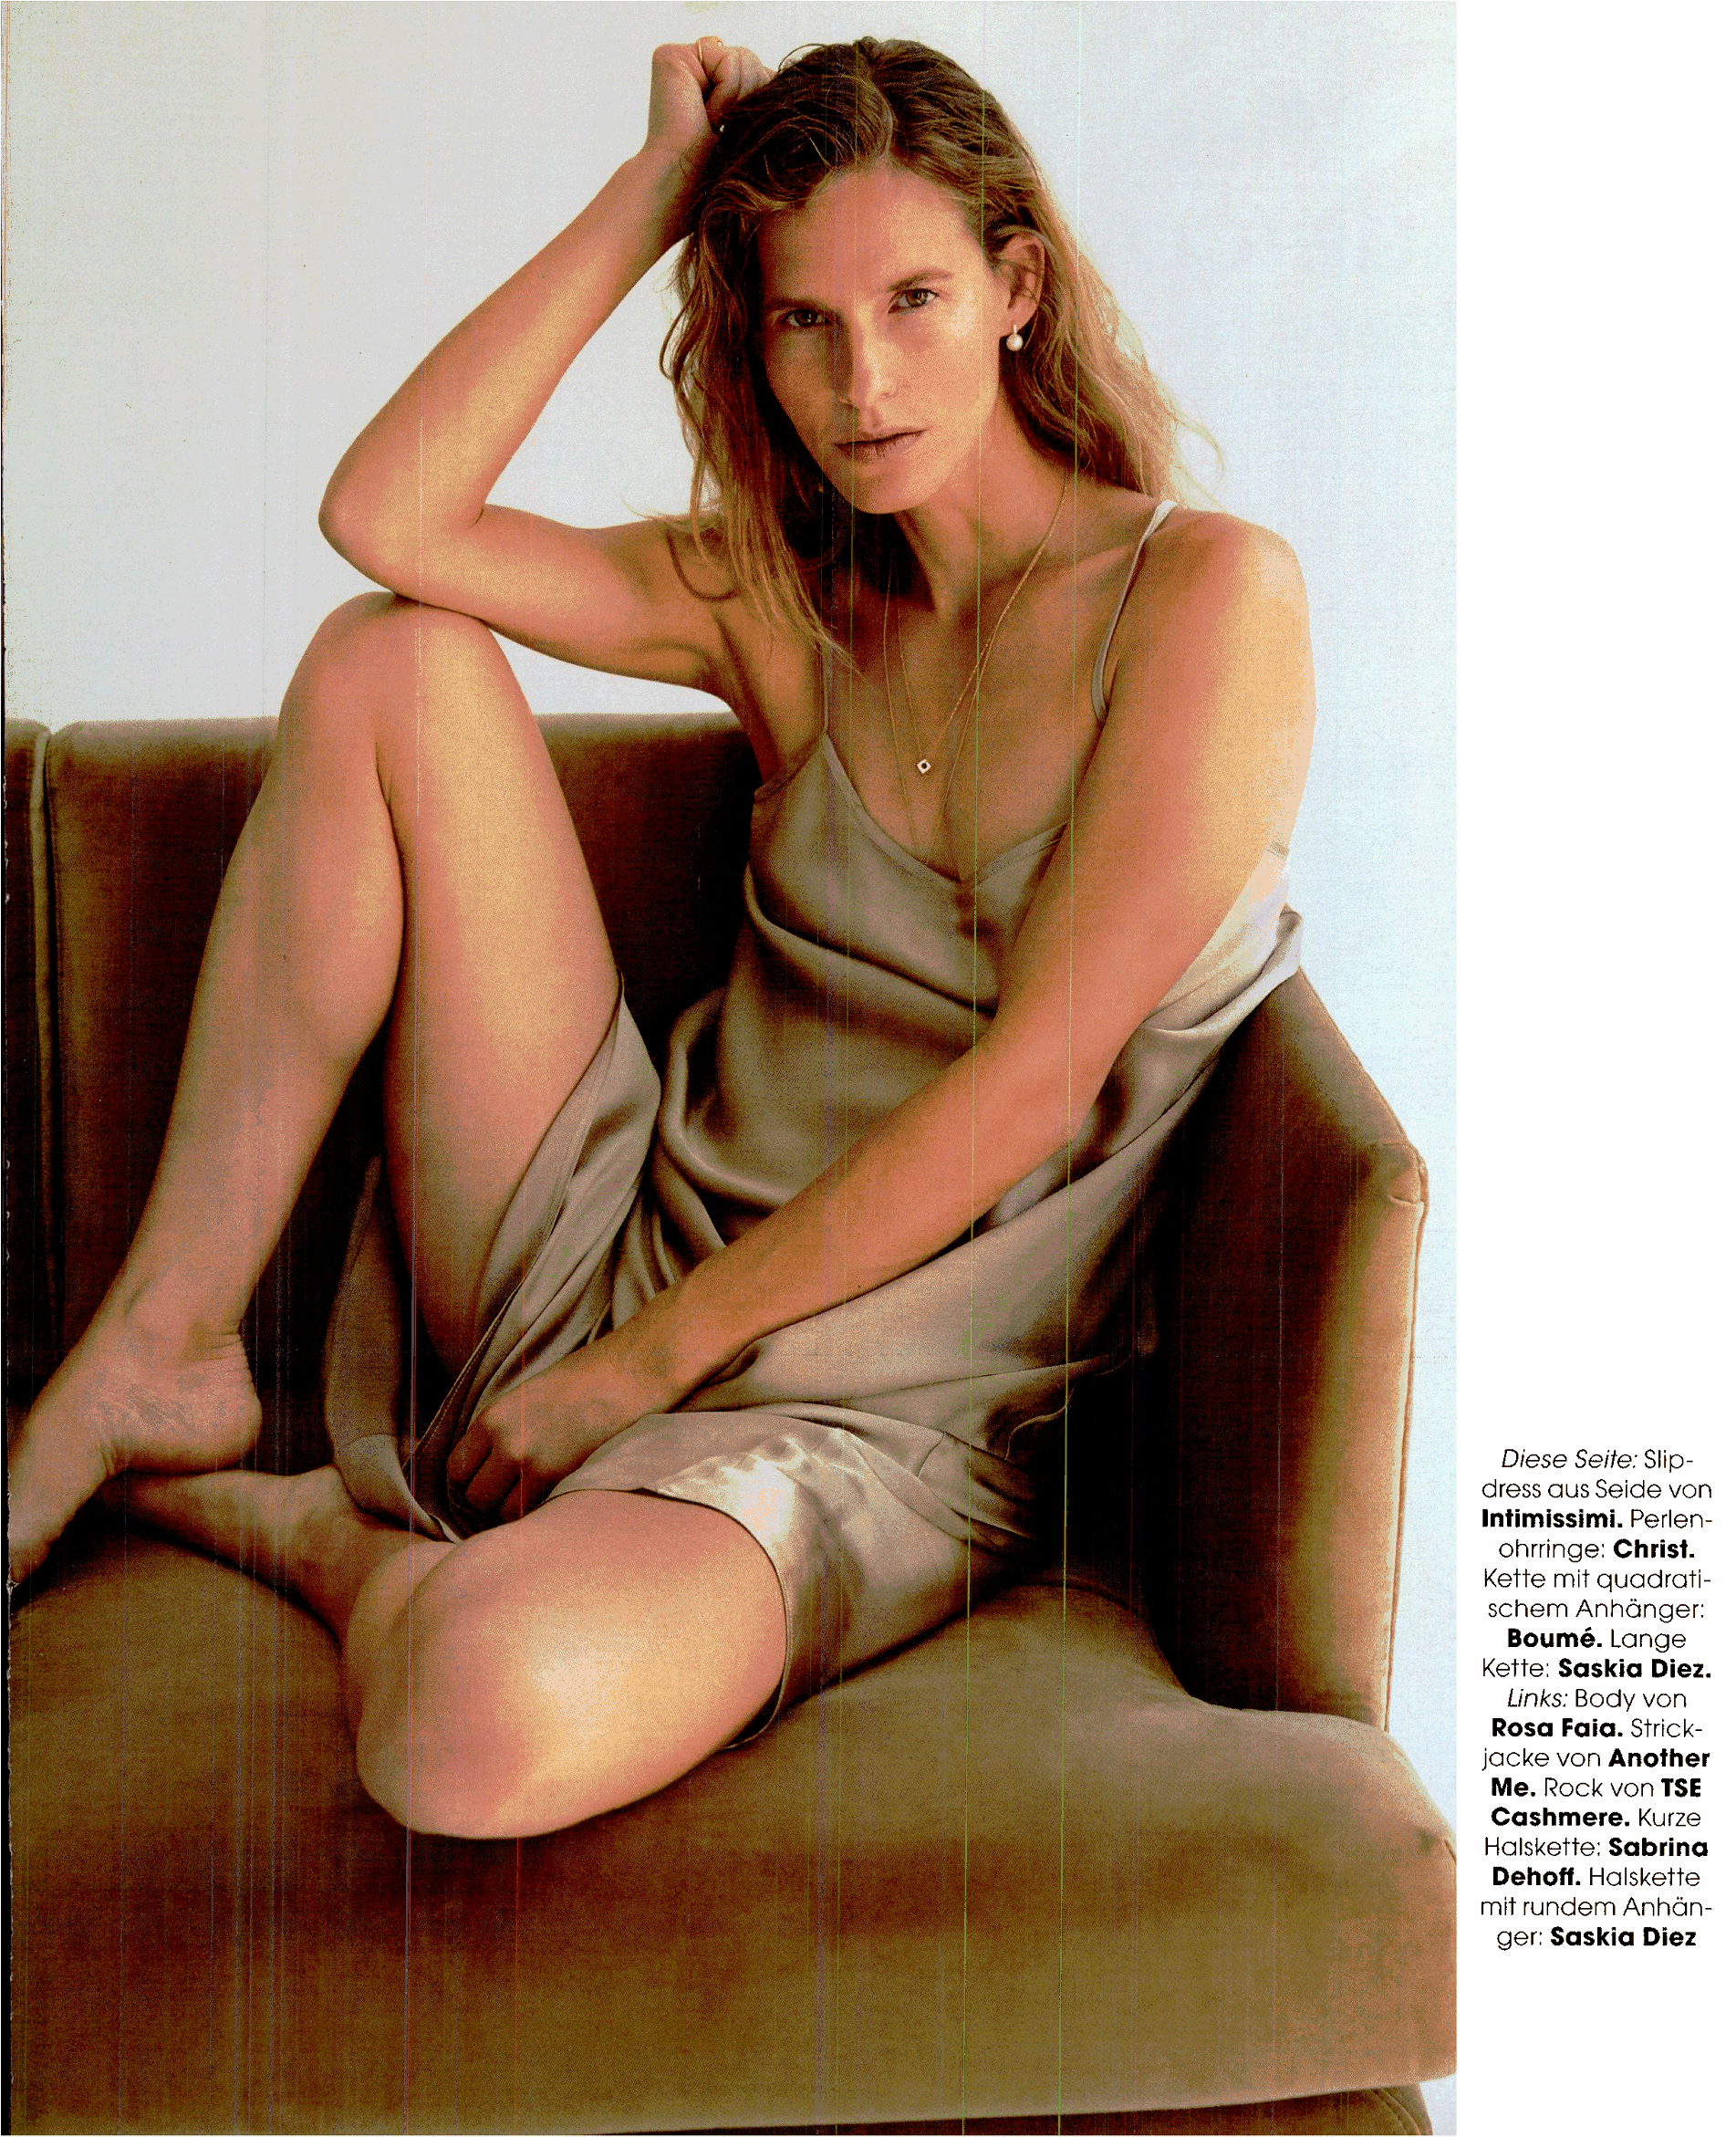 Donna_intimissimi_01092019.png